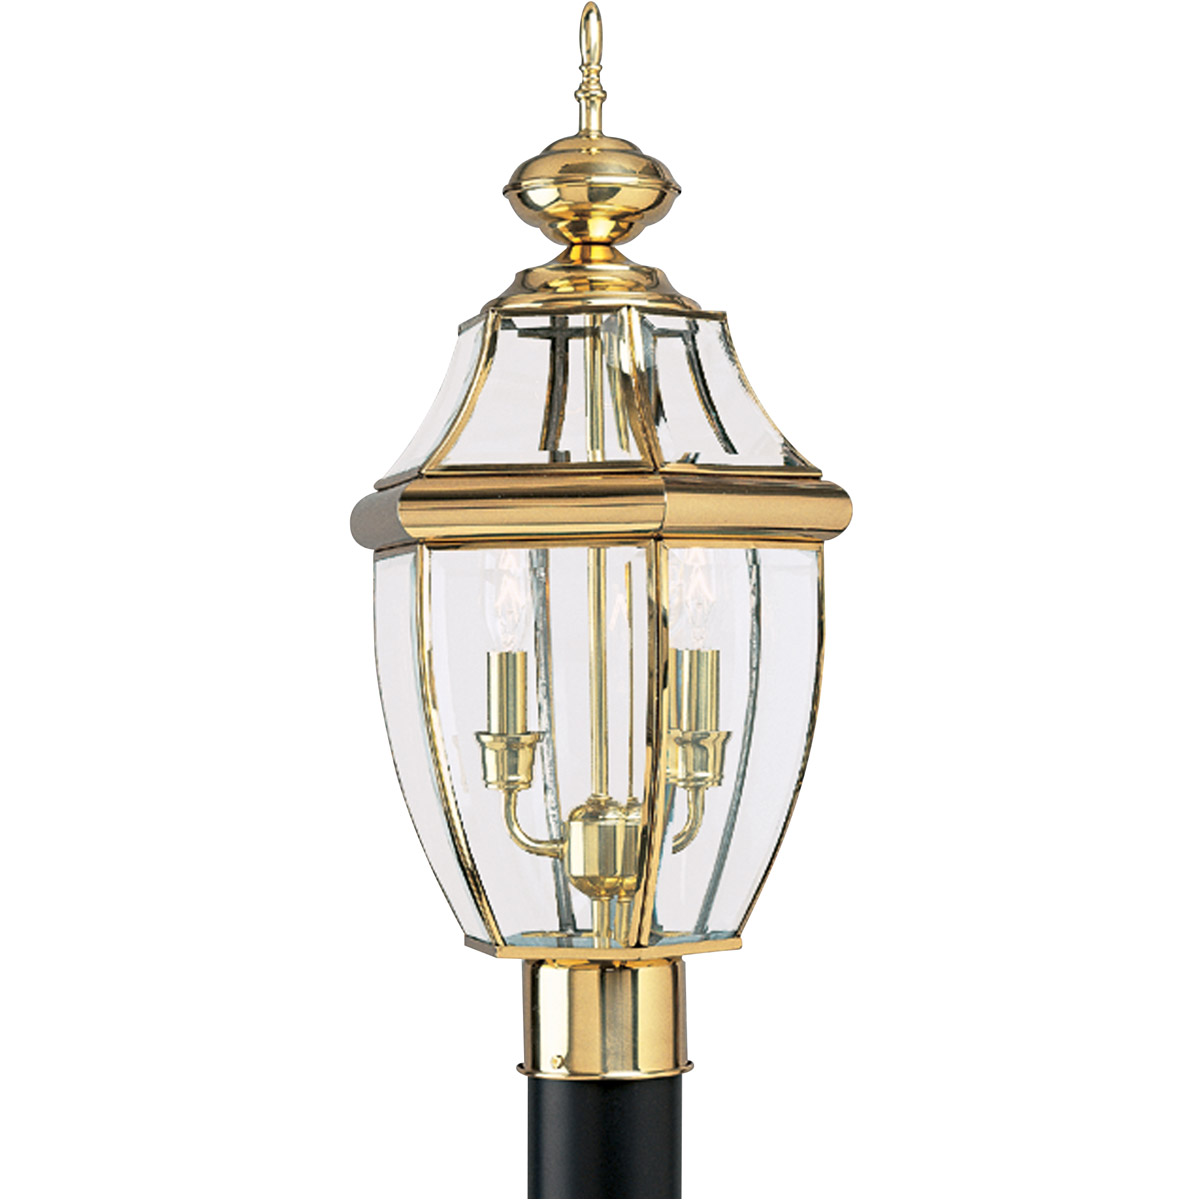 Sea Gull Lighting Lancaster 2 Light Outdoor Post Lantern in Polished Brass 8229-02